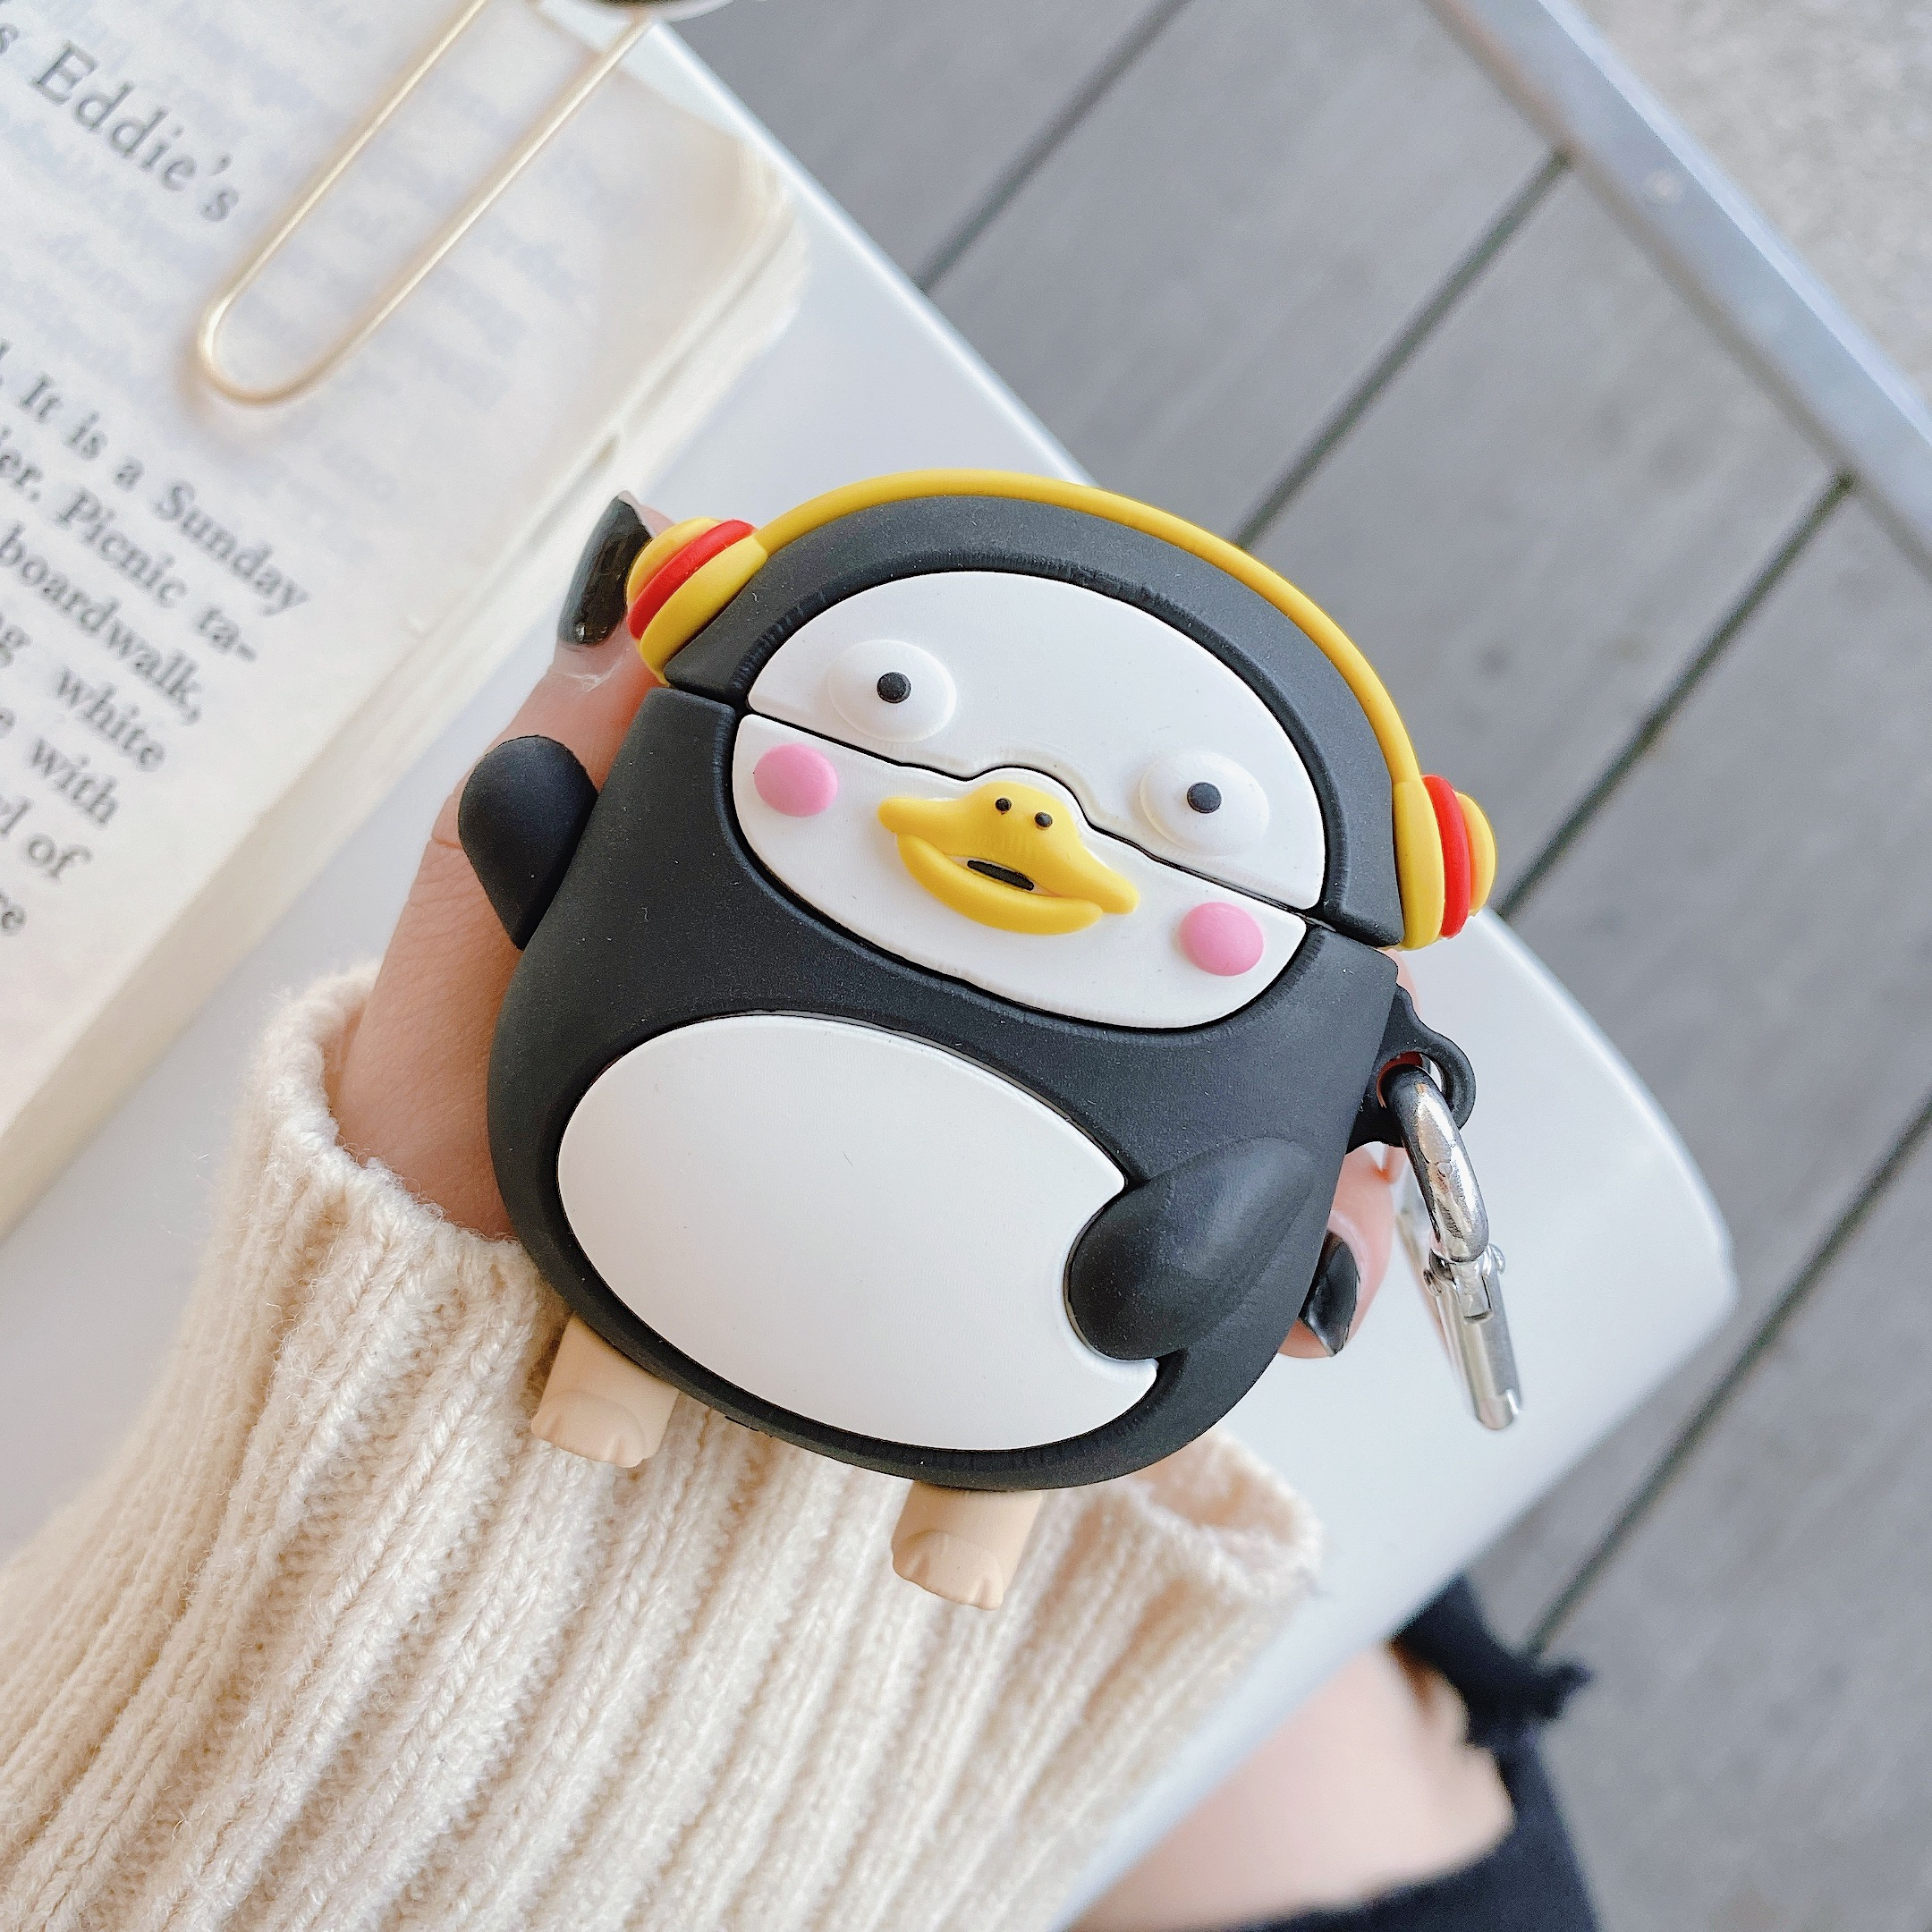 For Apple AirPods Pro Cartoon Cute Dynamic Penguin Headphone Case For AirPods 1 2 3 Bluetooth Wireless Earphone Cover With Hook